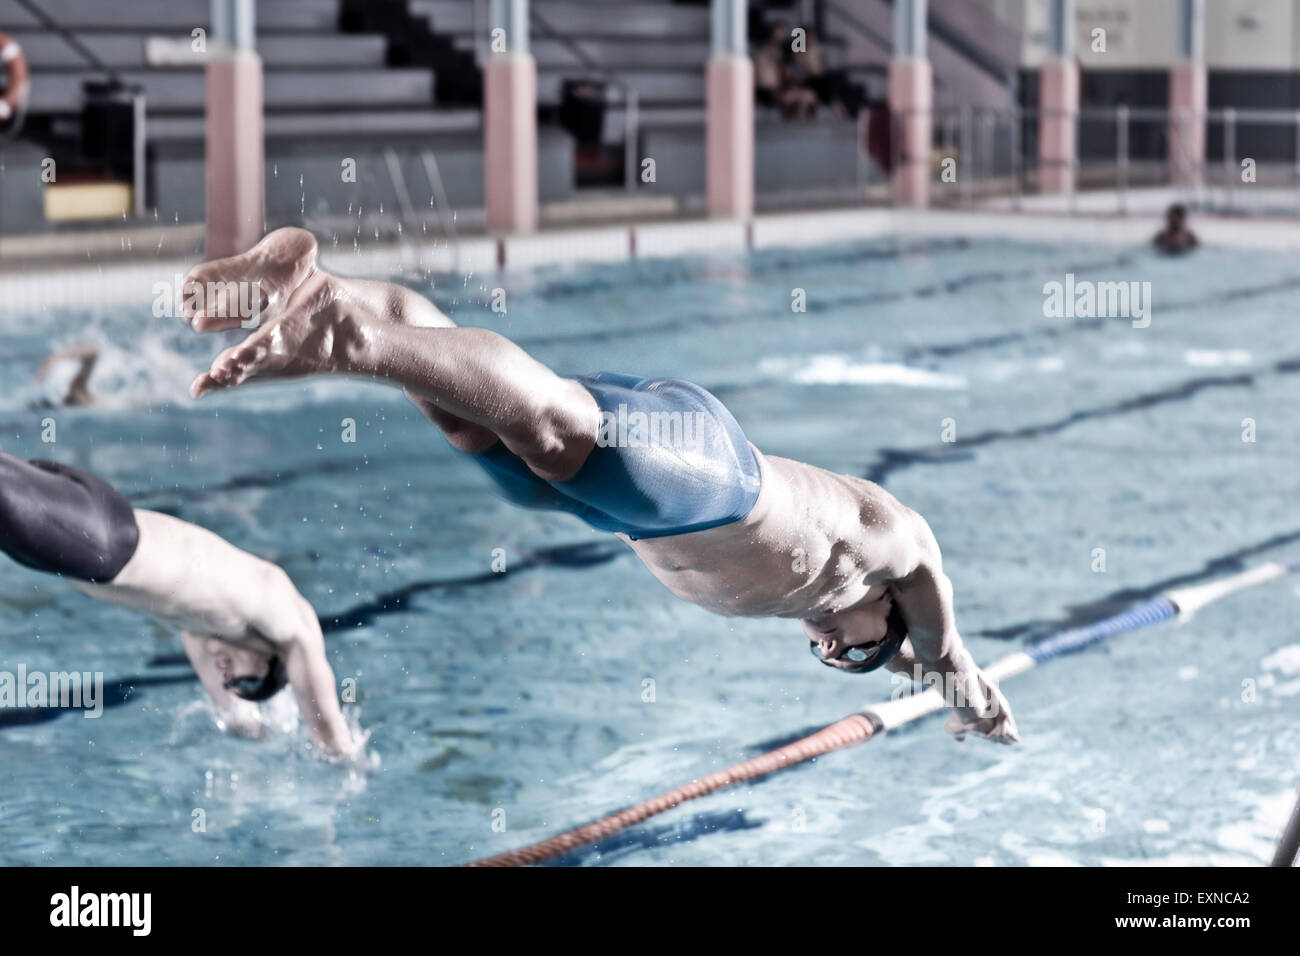 Two swimmers in indoor pool starting - Stock Image